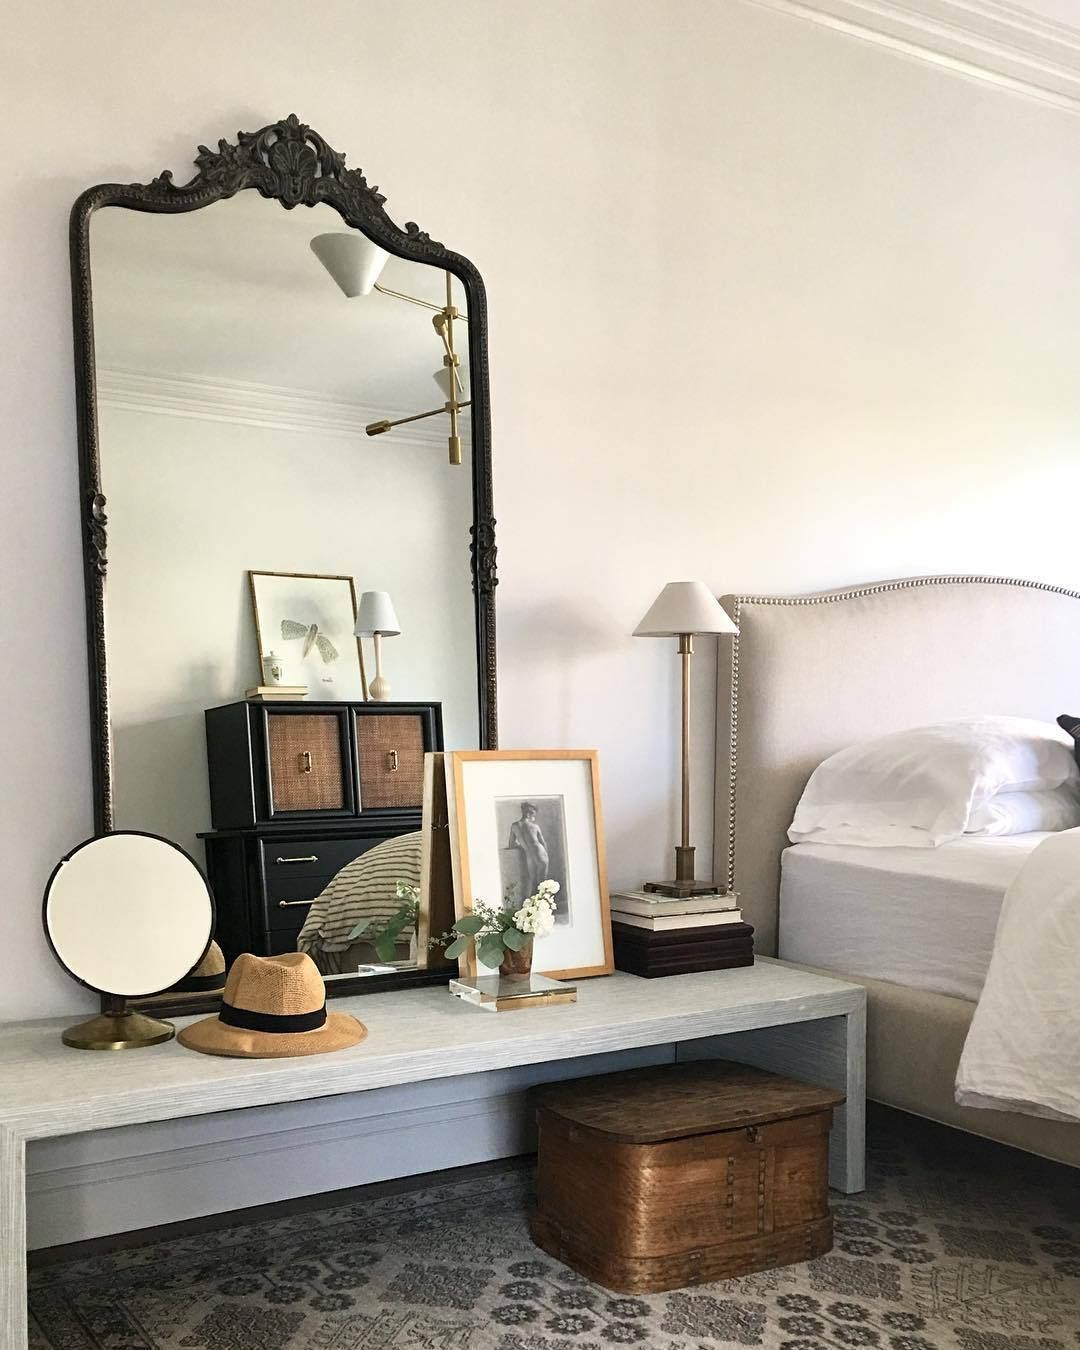 May at pm from sabonhomeblog interior and exterior design also pin by alexis meyer on       pinterest bedroom rh